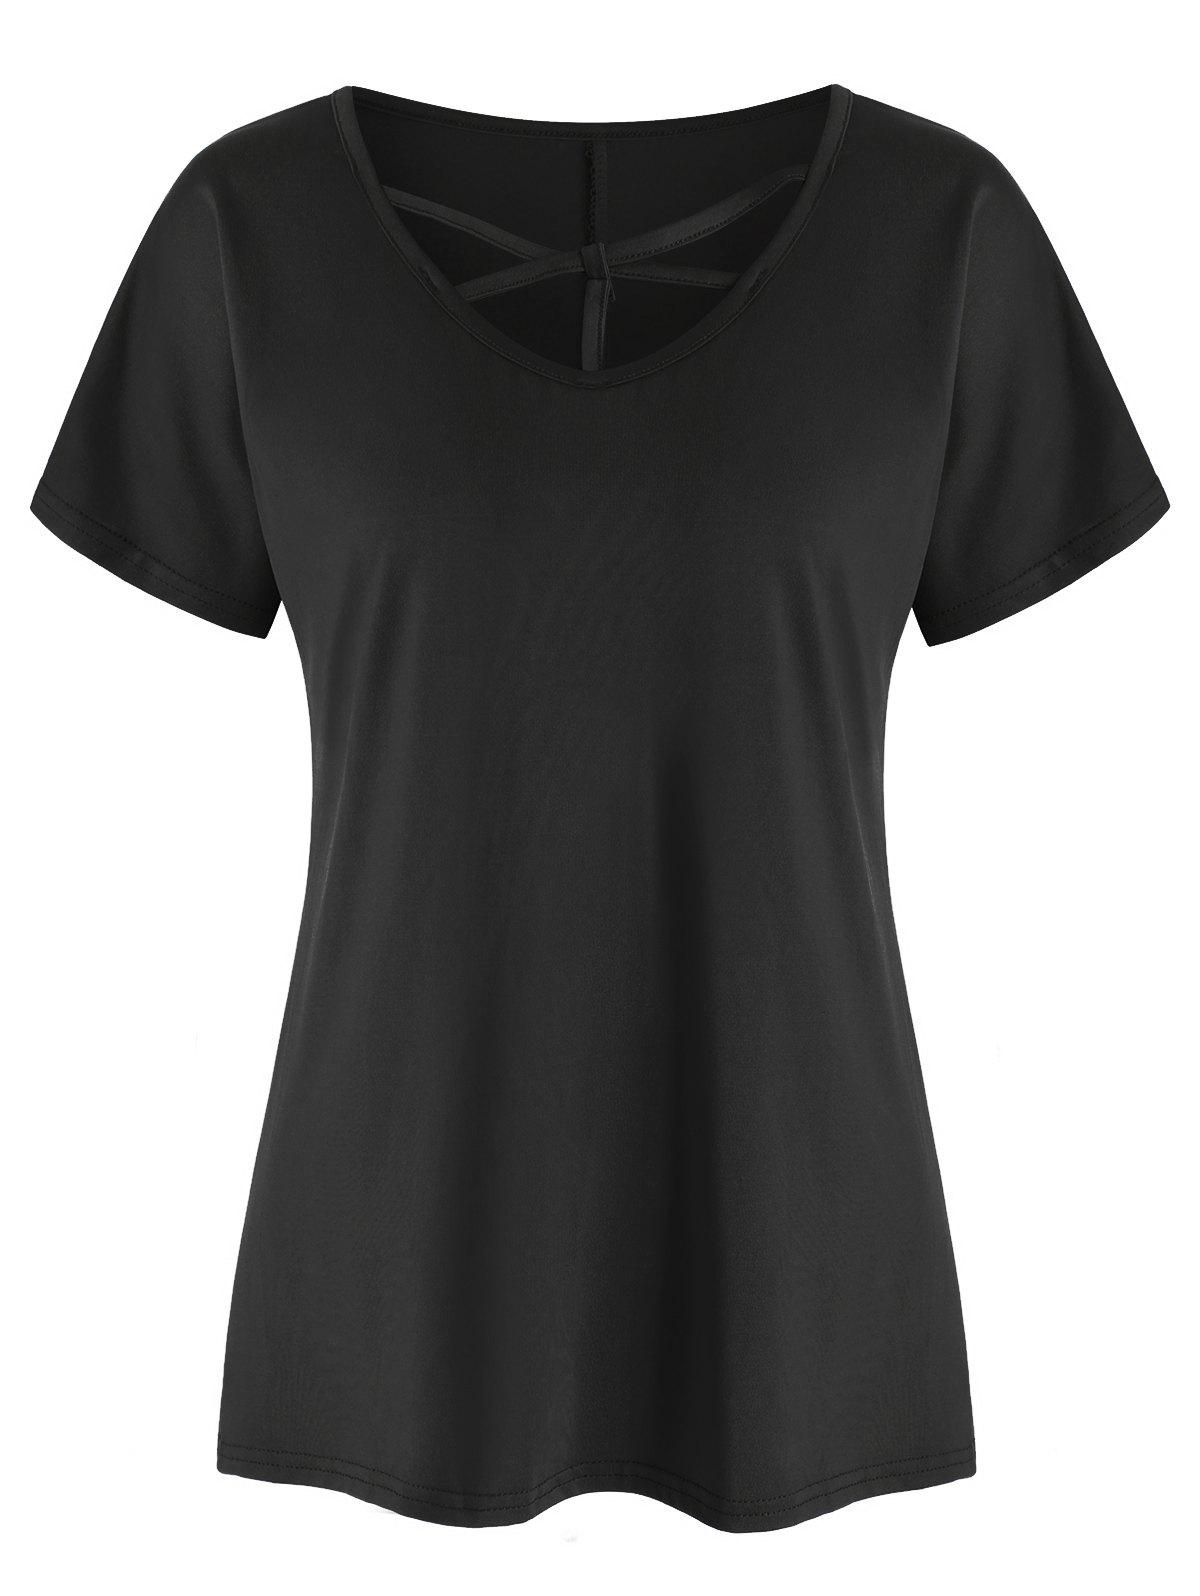 Store Criss Cross Solid Short Sleeves Tee